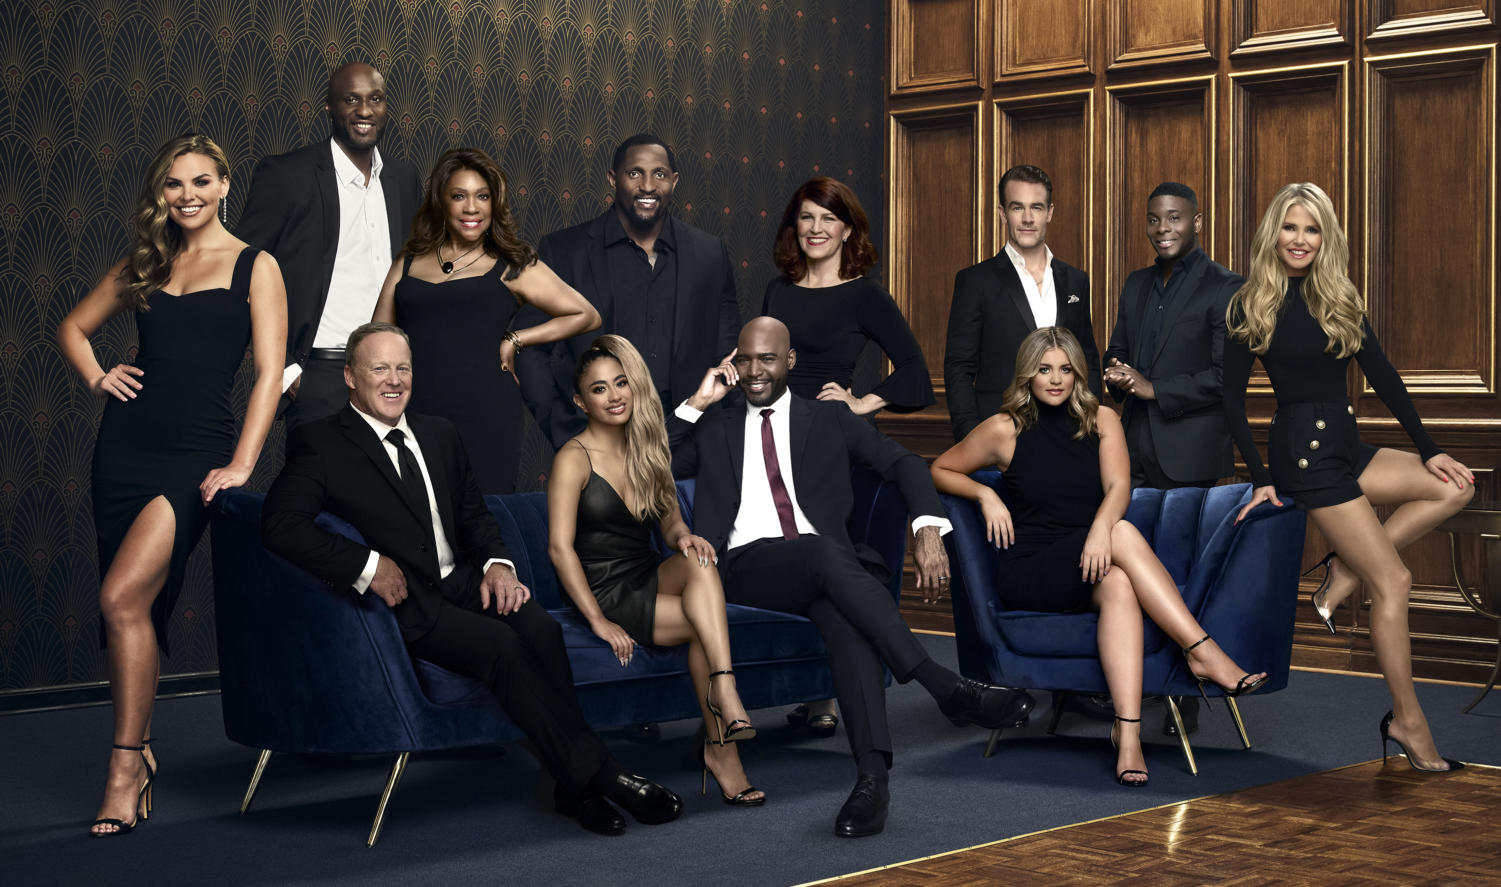 The cast of the new season of